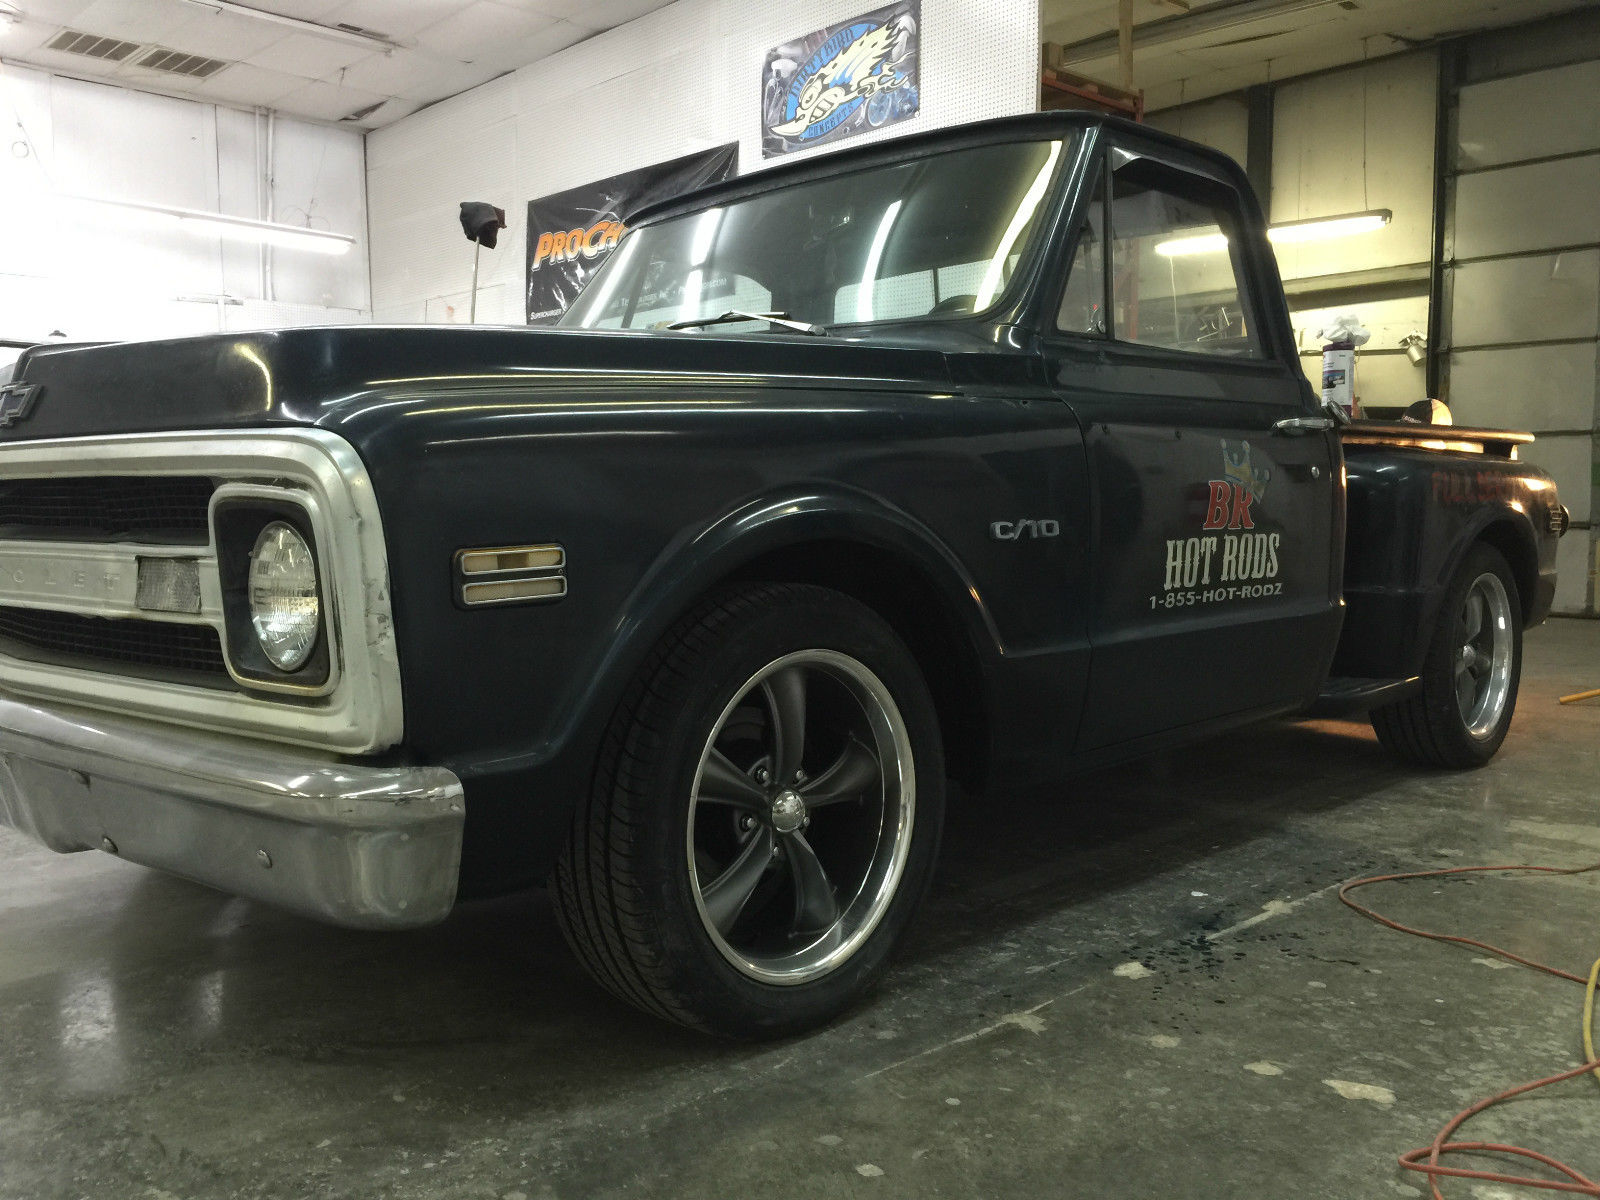 1969 Chevy C10 Short Bed Lowered Shop Truck With Pin